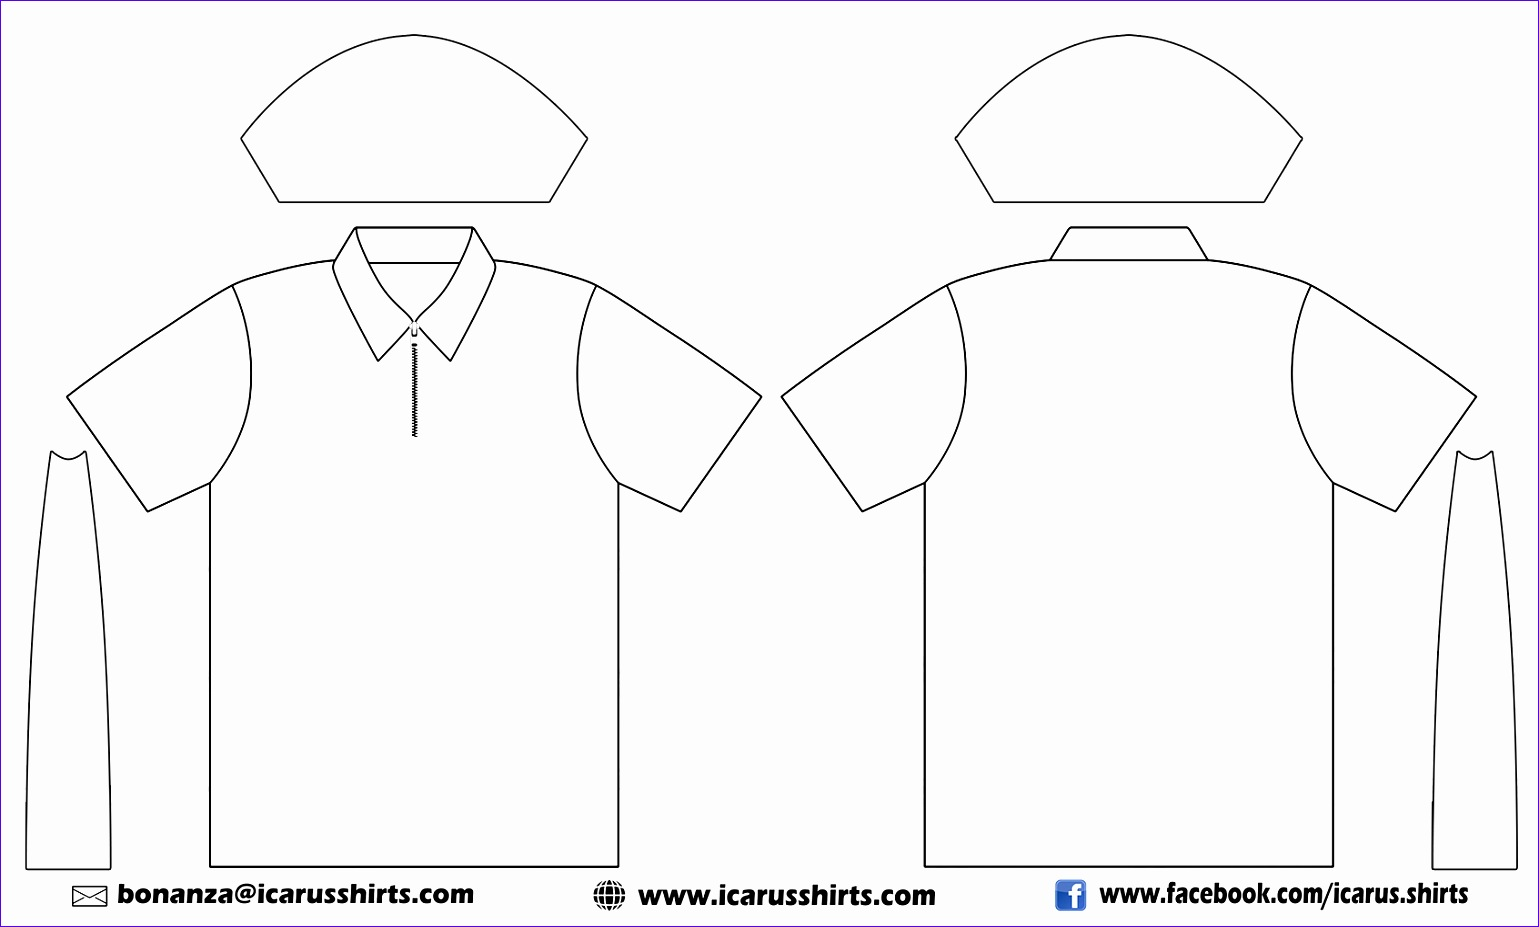 dry fit shirts